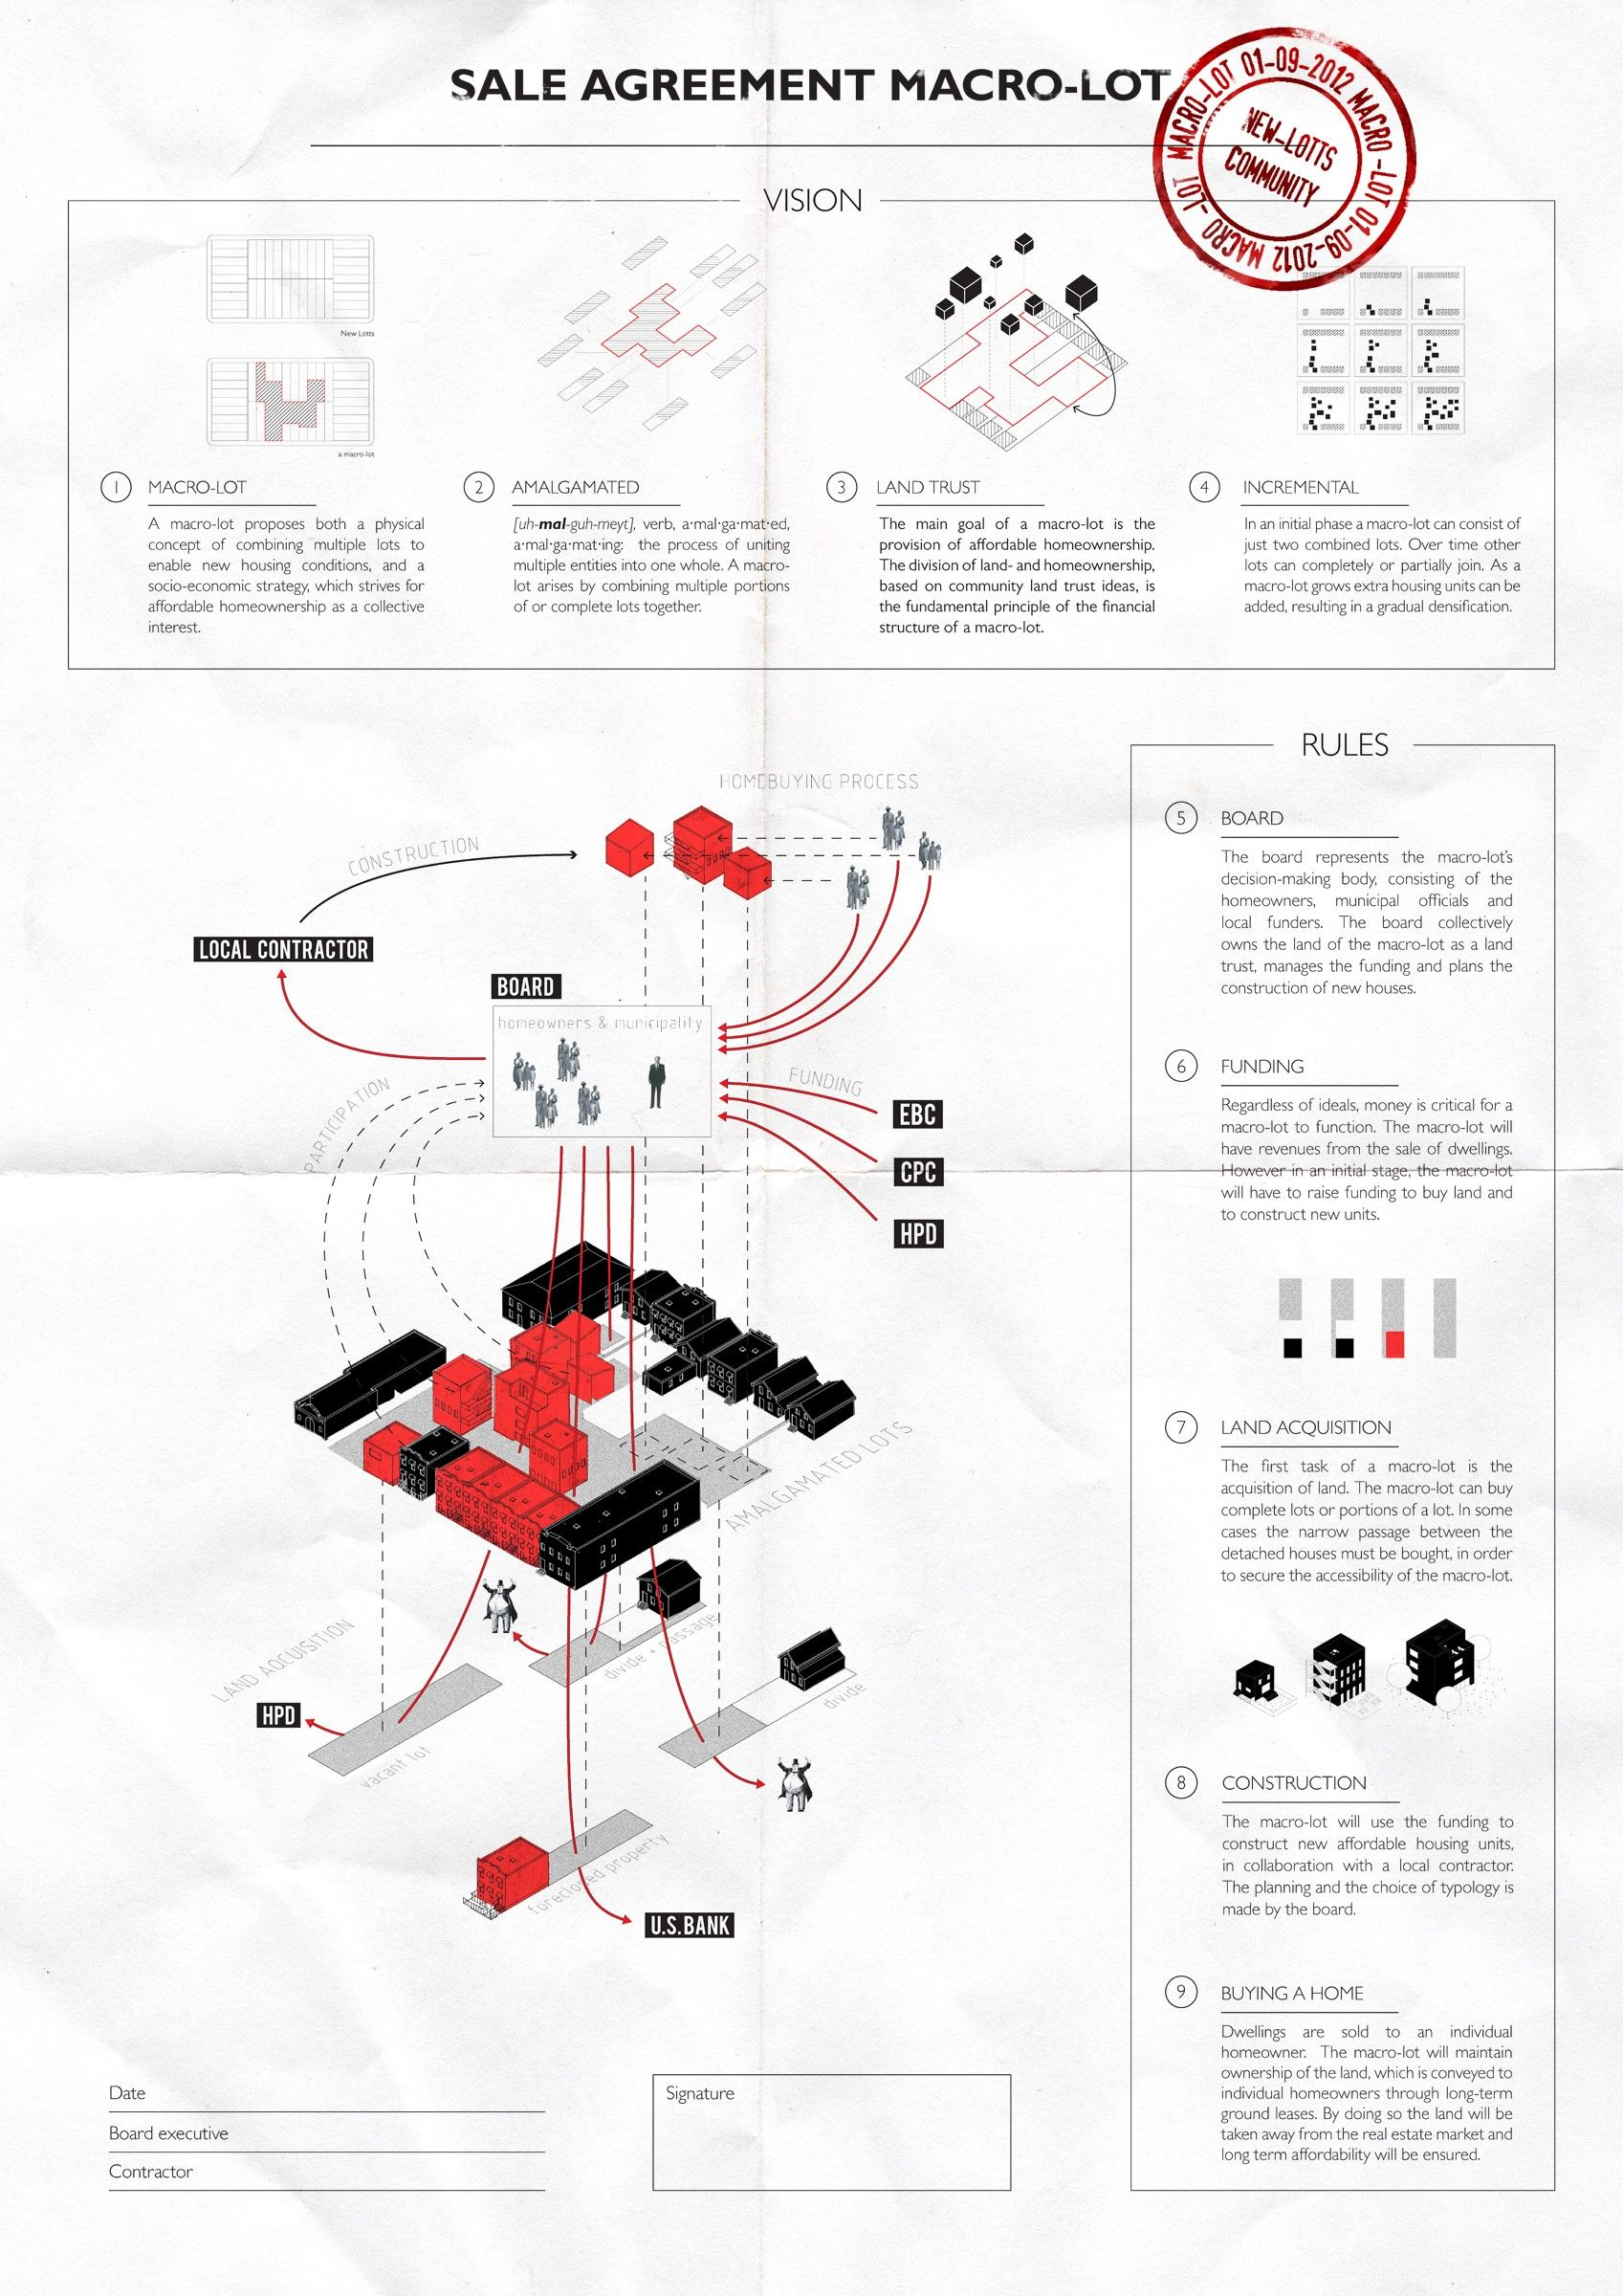 Pin By Huai Kuan Chung On Diagram Landscape